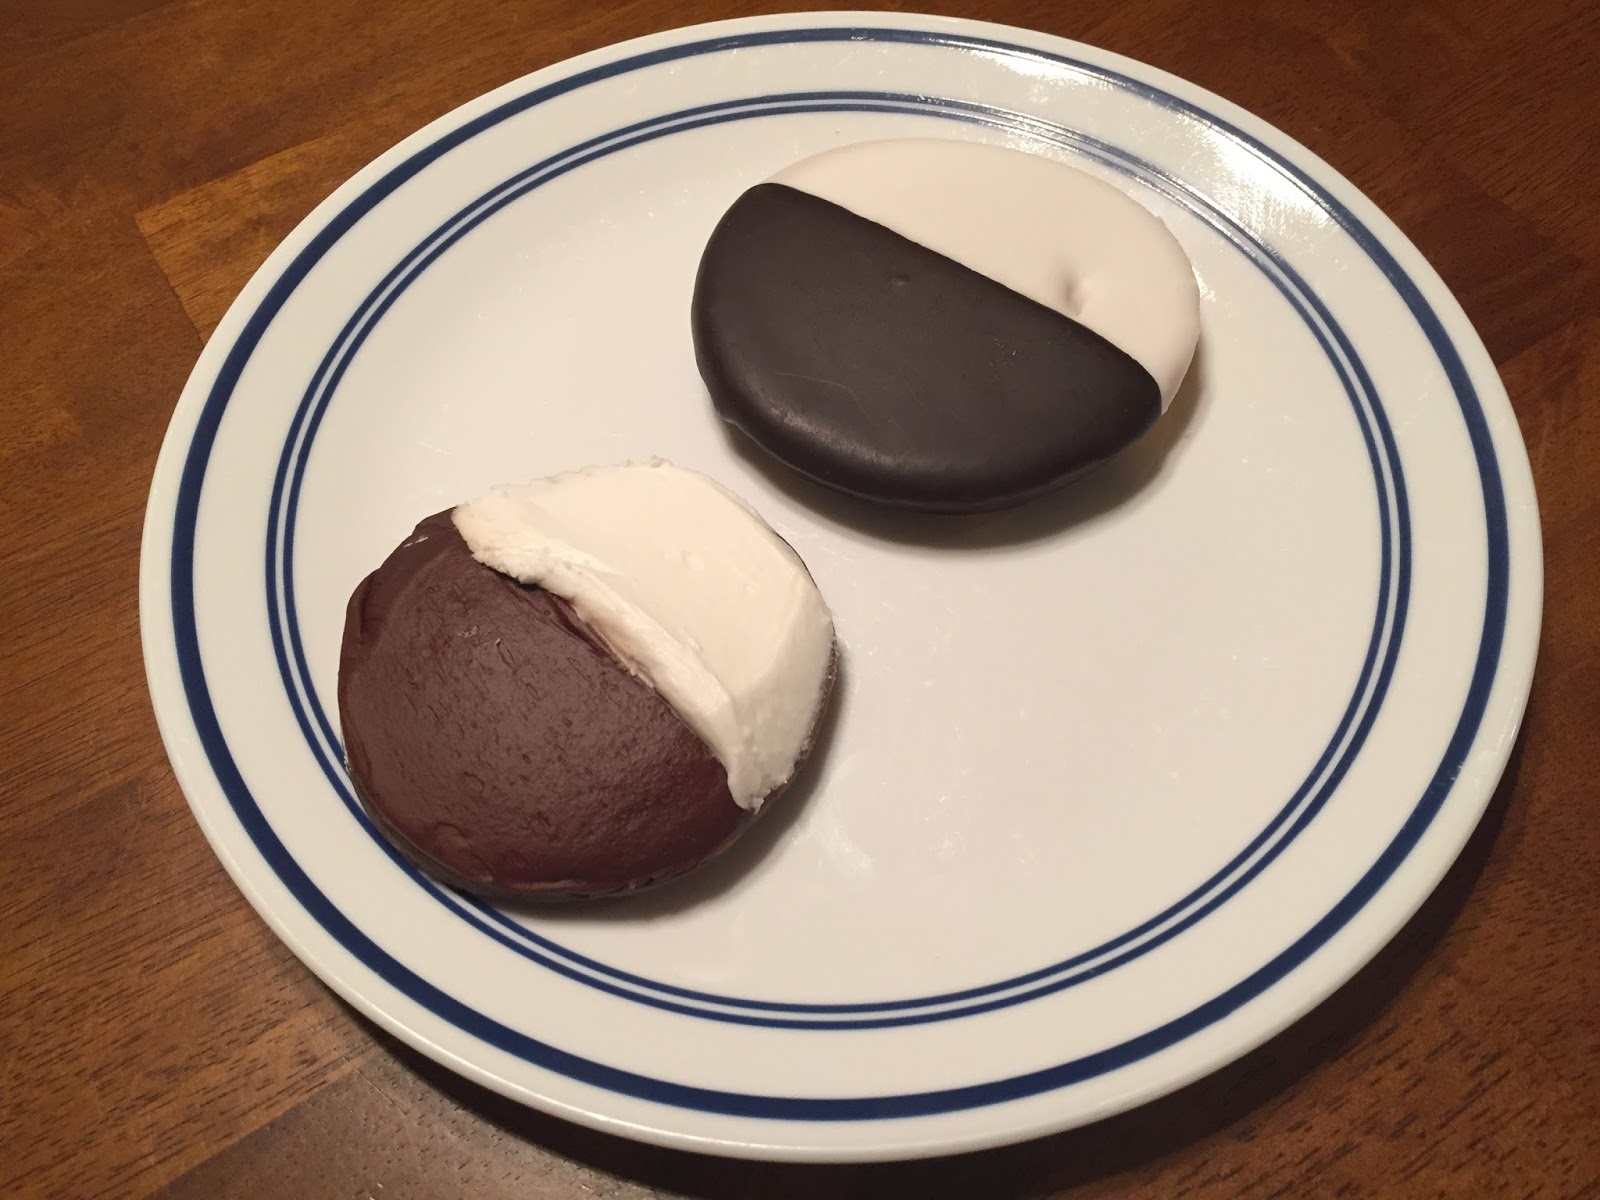 Will know, half moon cookies seems me